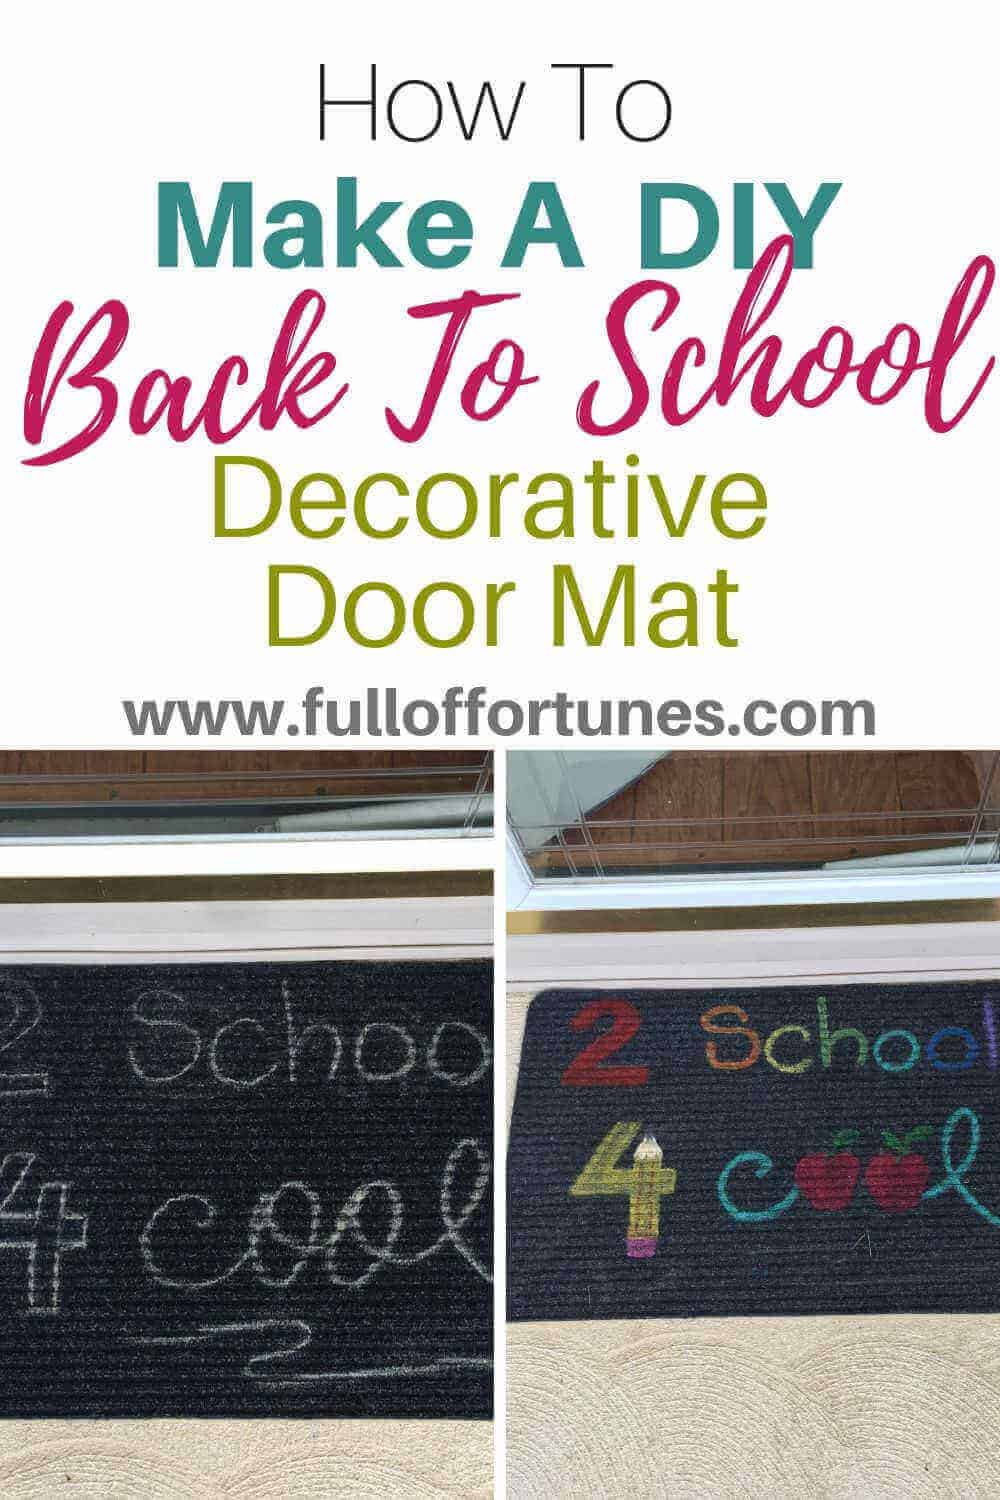 Back To School Door Mat